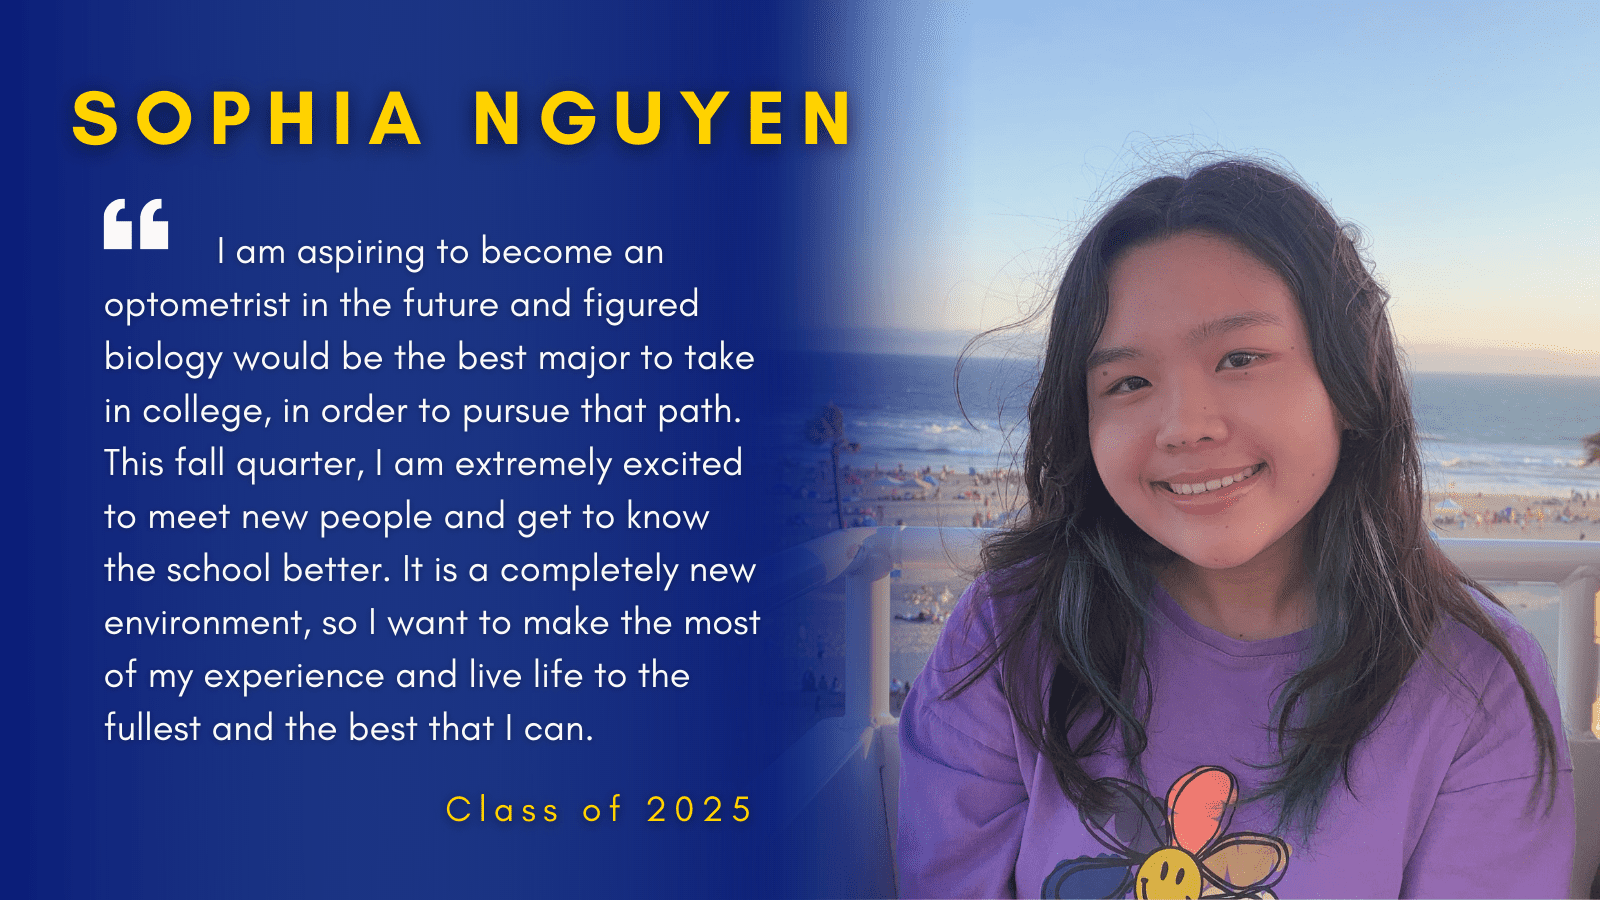 Image of Sophia Nguyen with her quote.